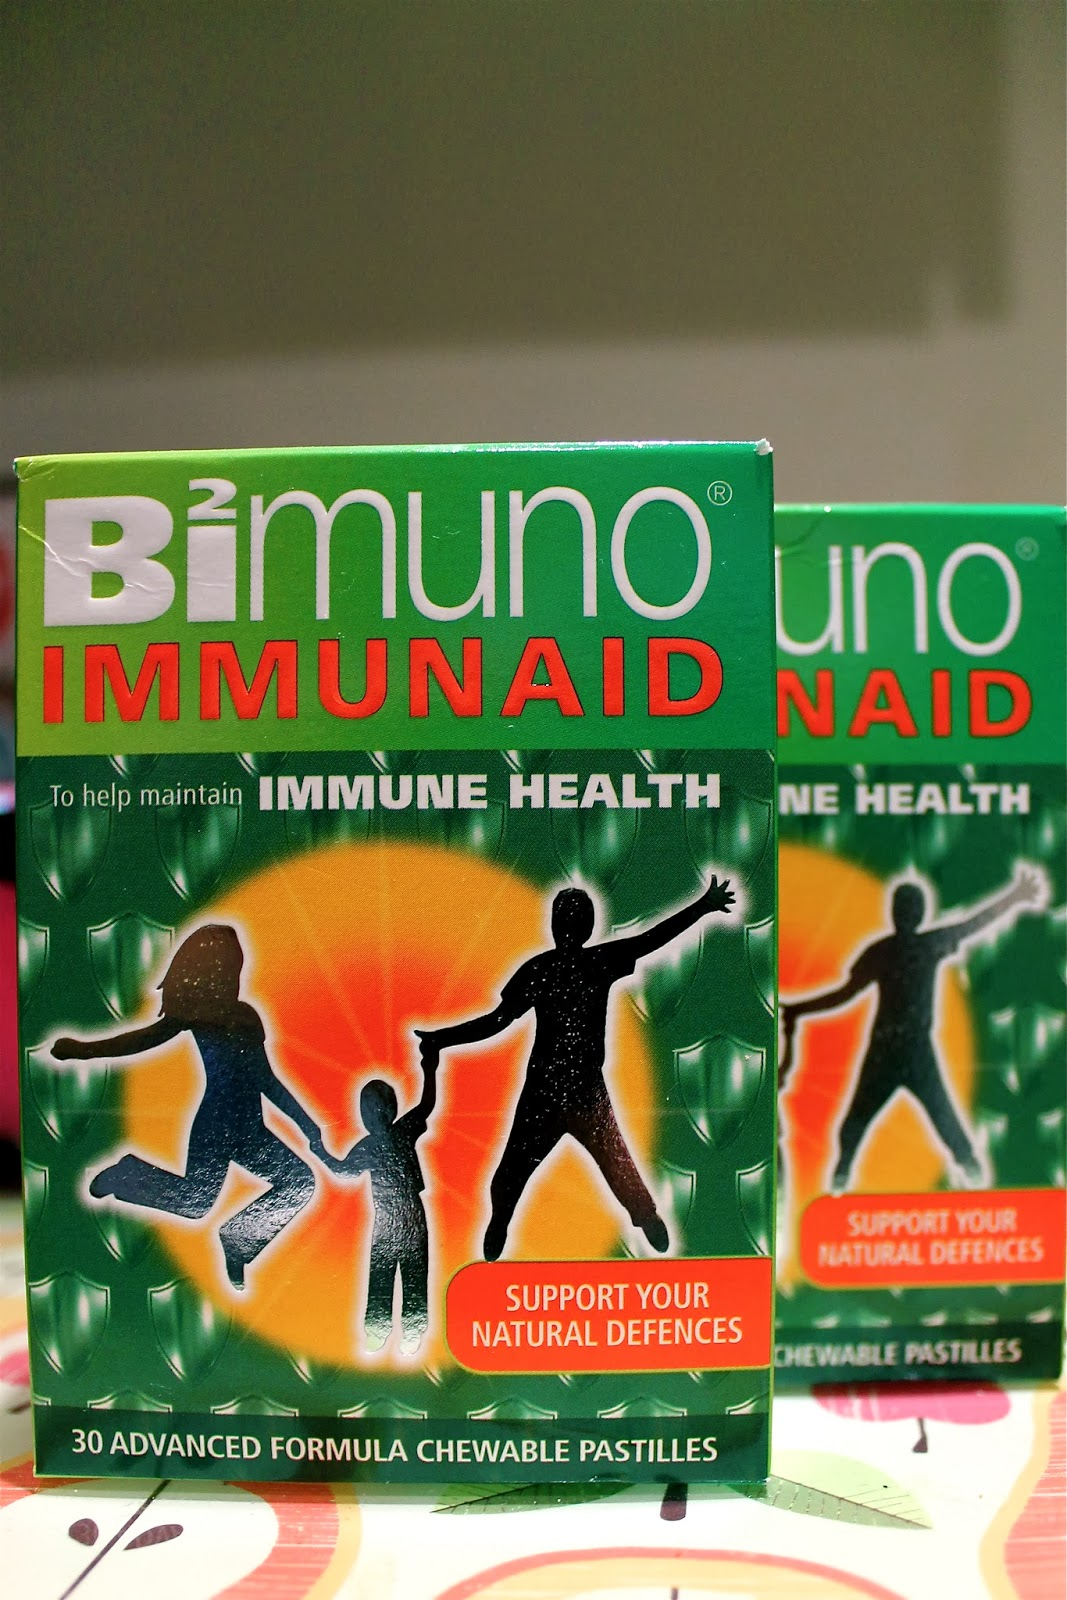 Bimuno Immunaid review